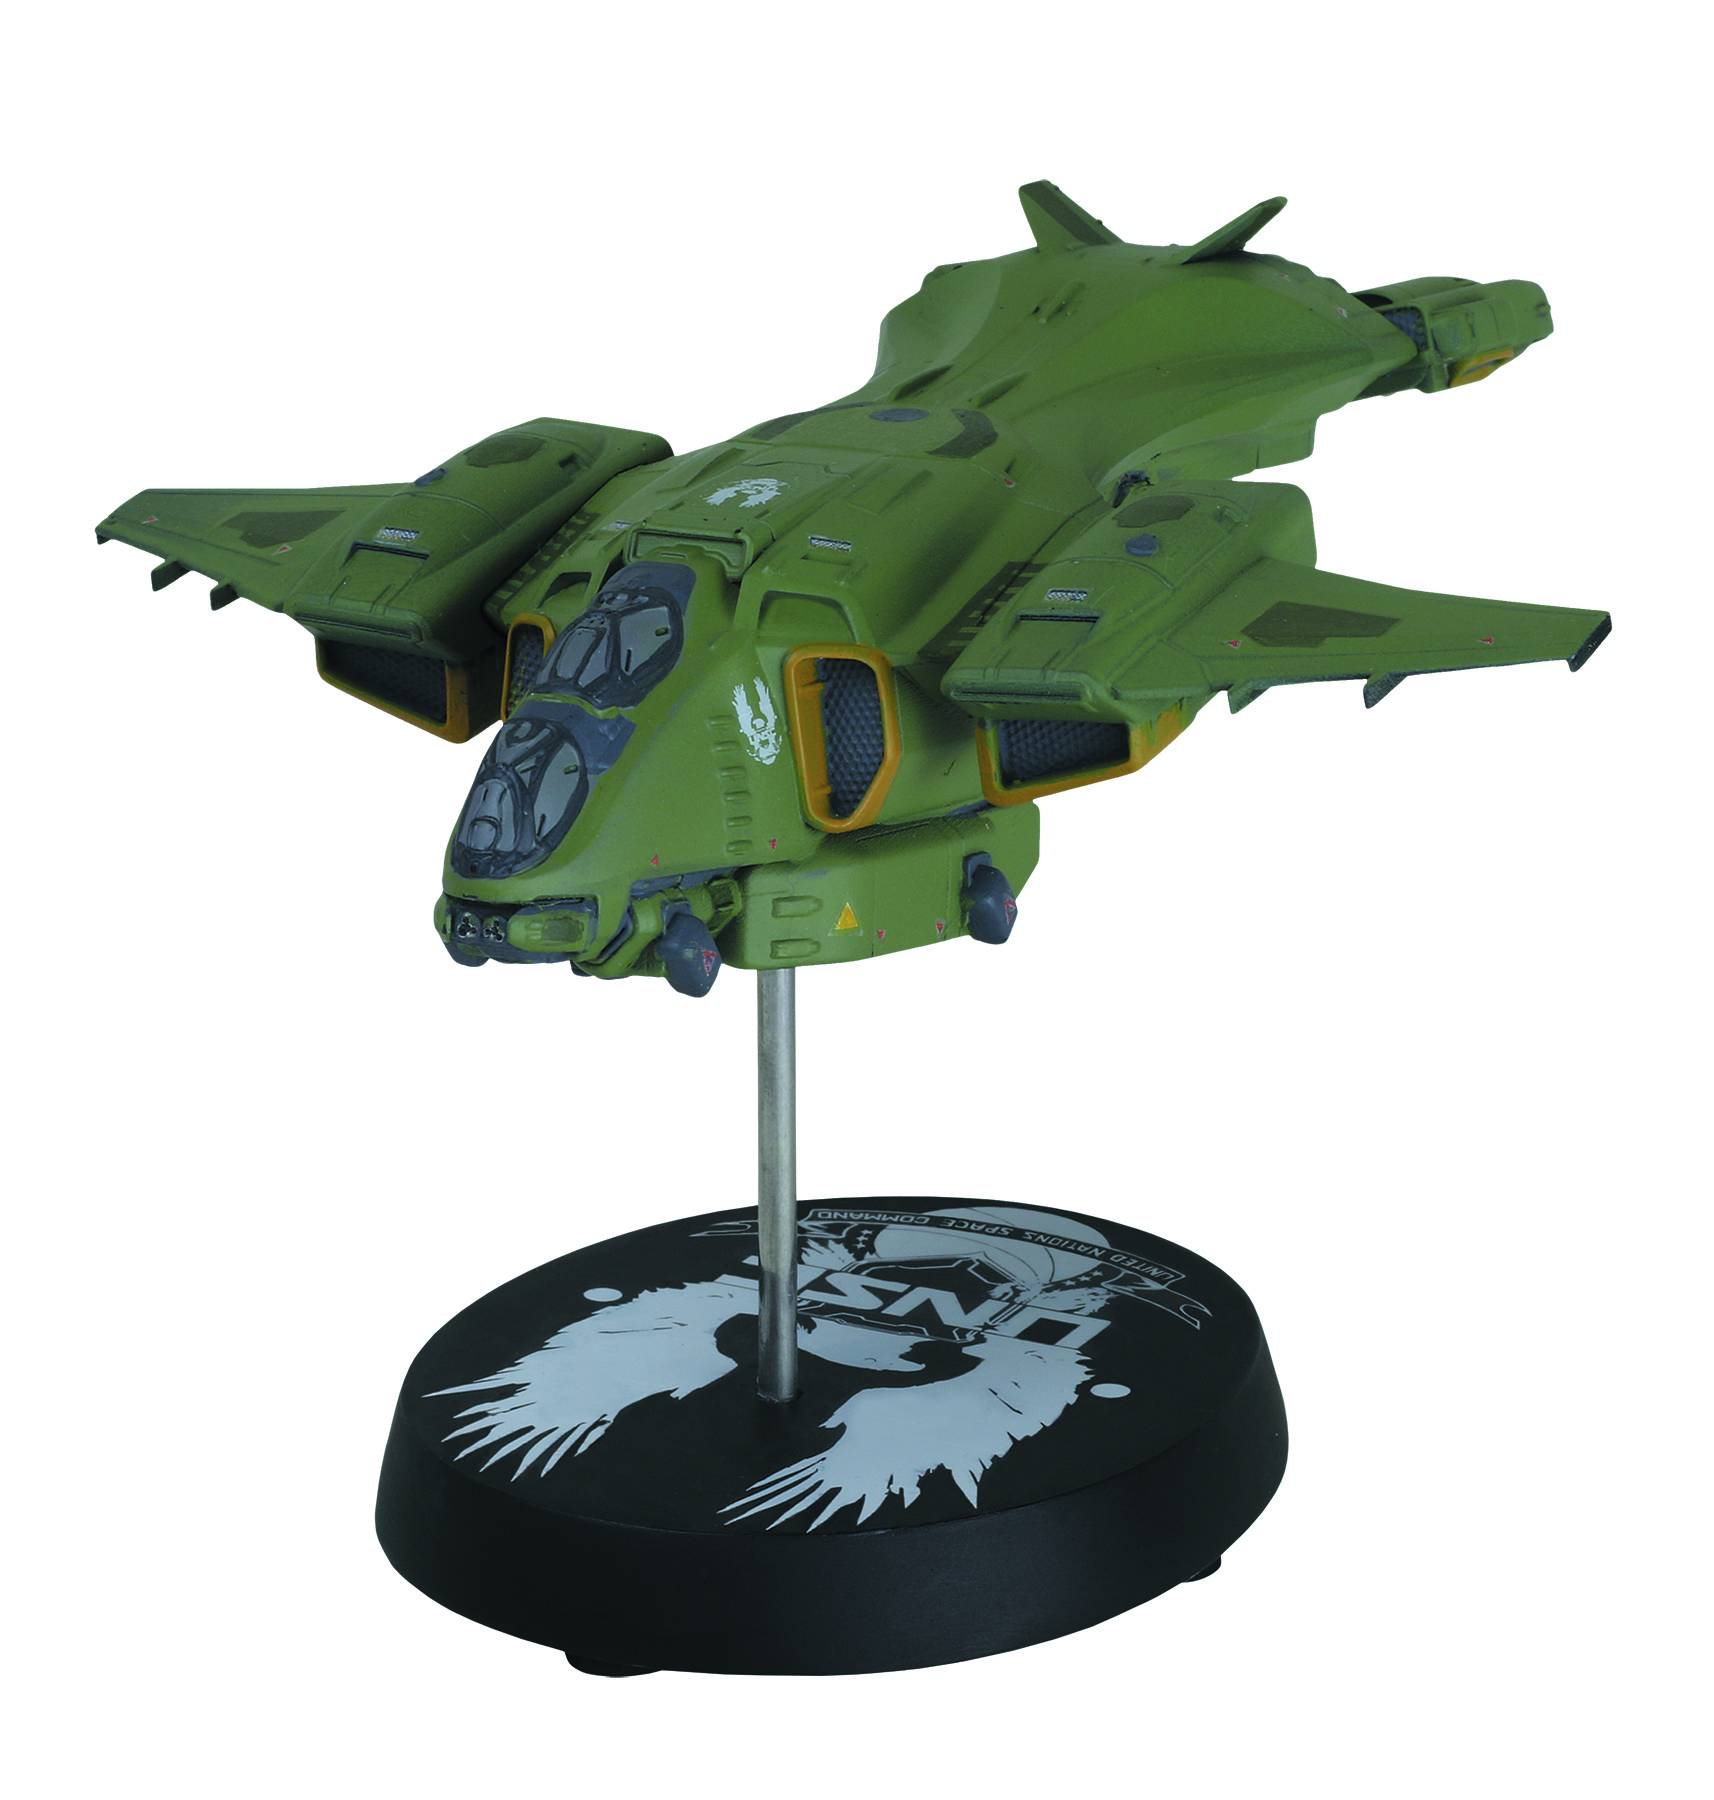 HALO UNSC PELICAN DROPSHIP 6 INCH REPLICA (APR150078)